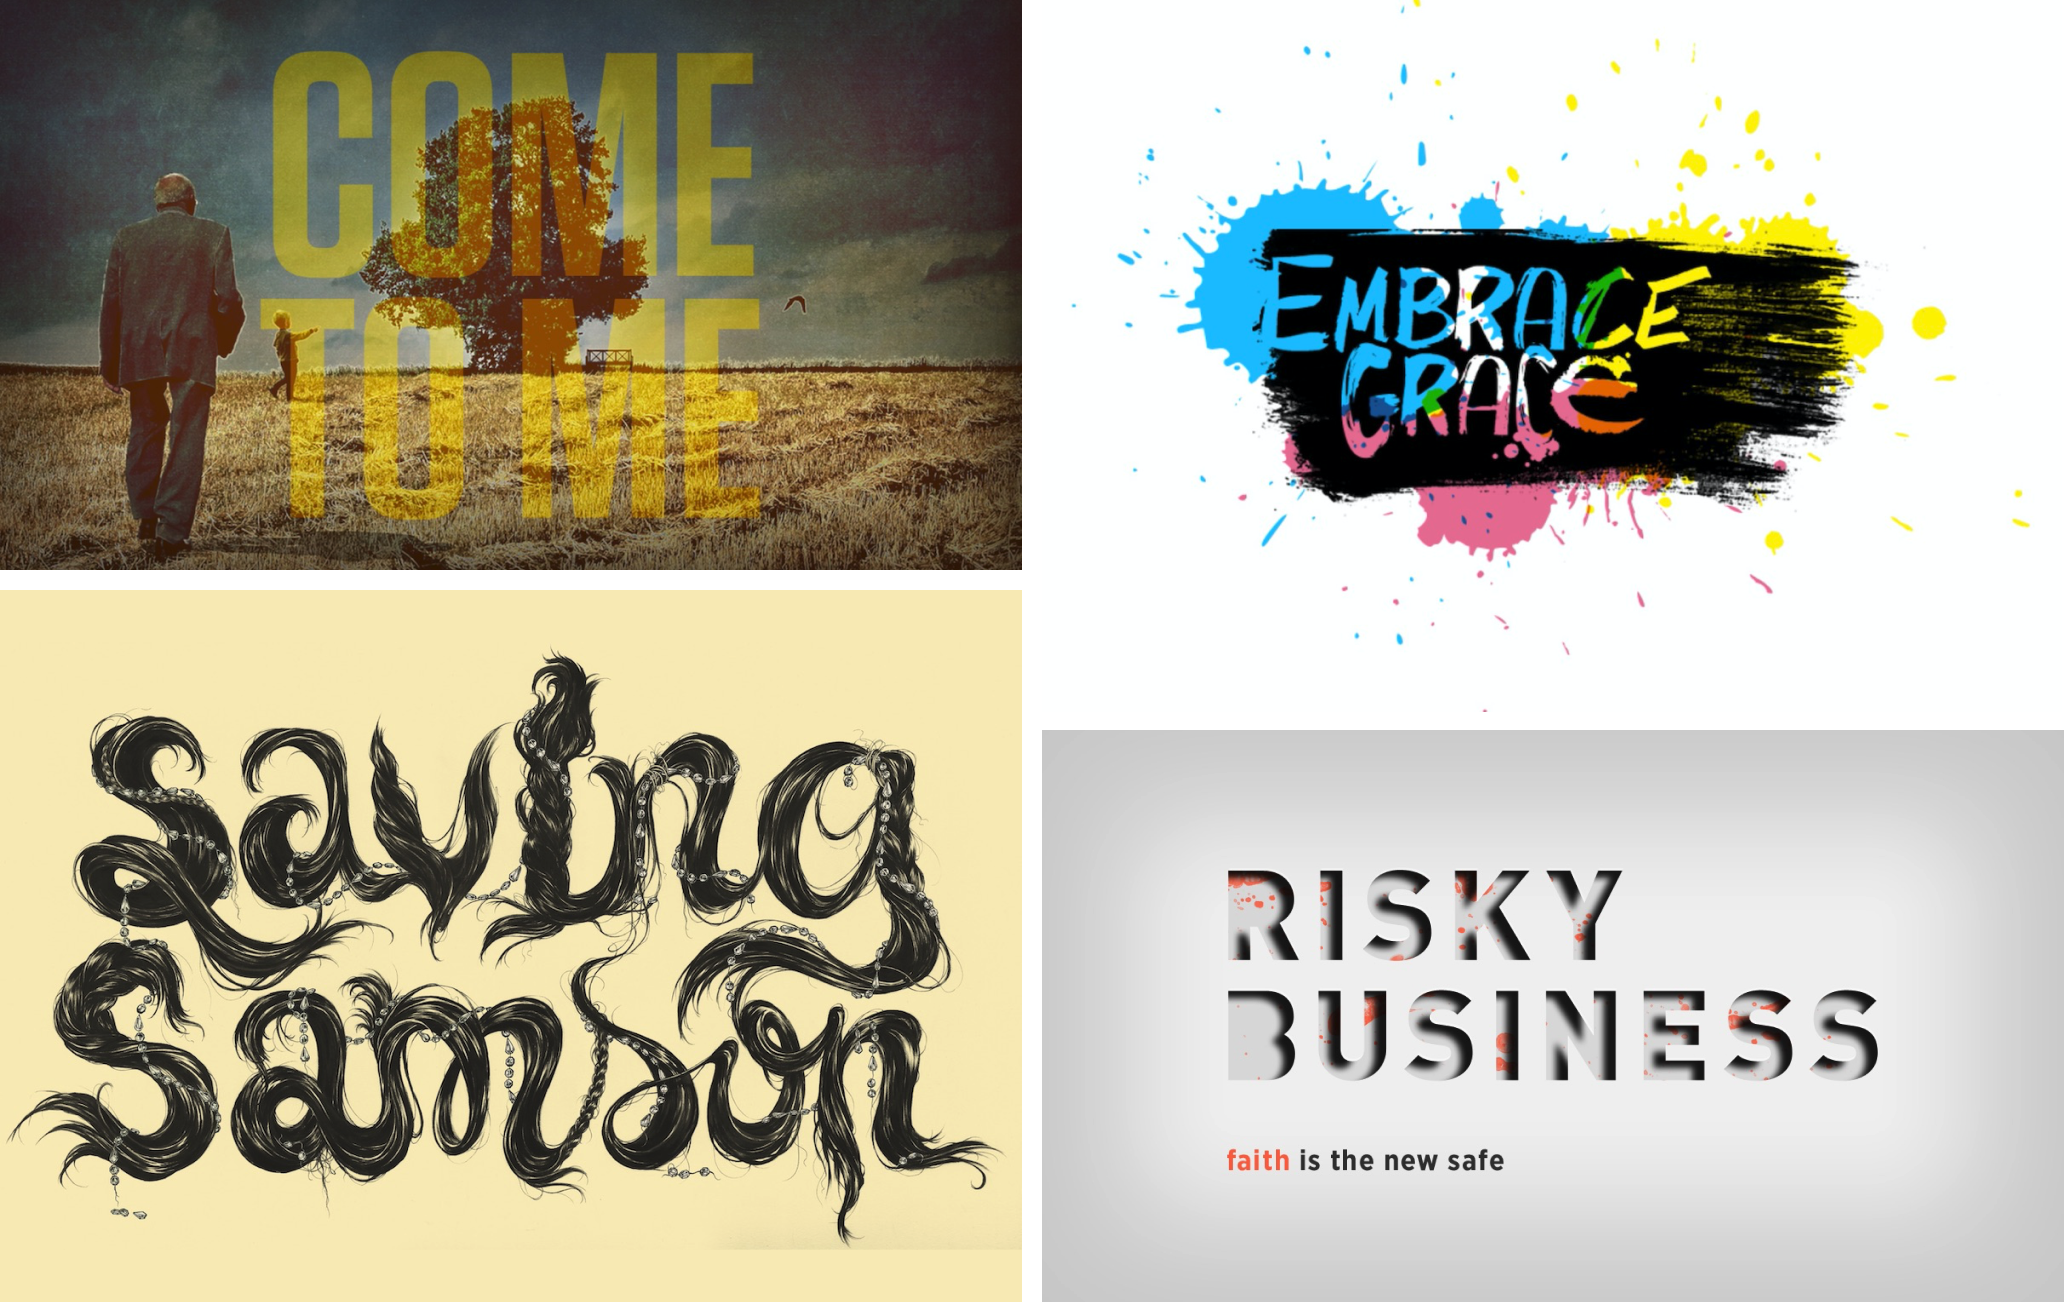 Various graphic compositions with different sermon series titles